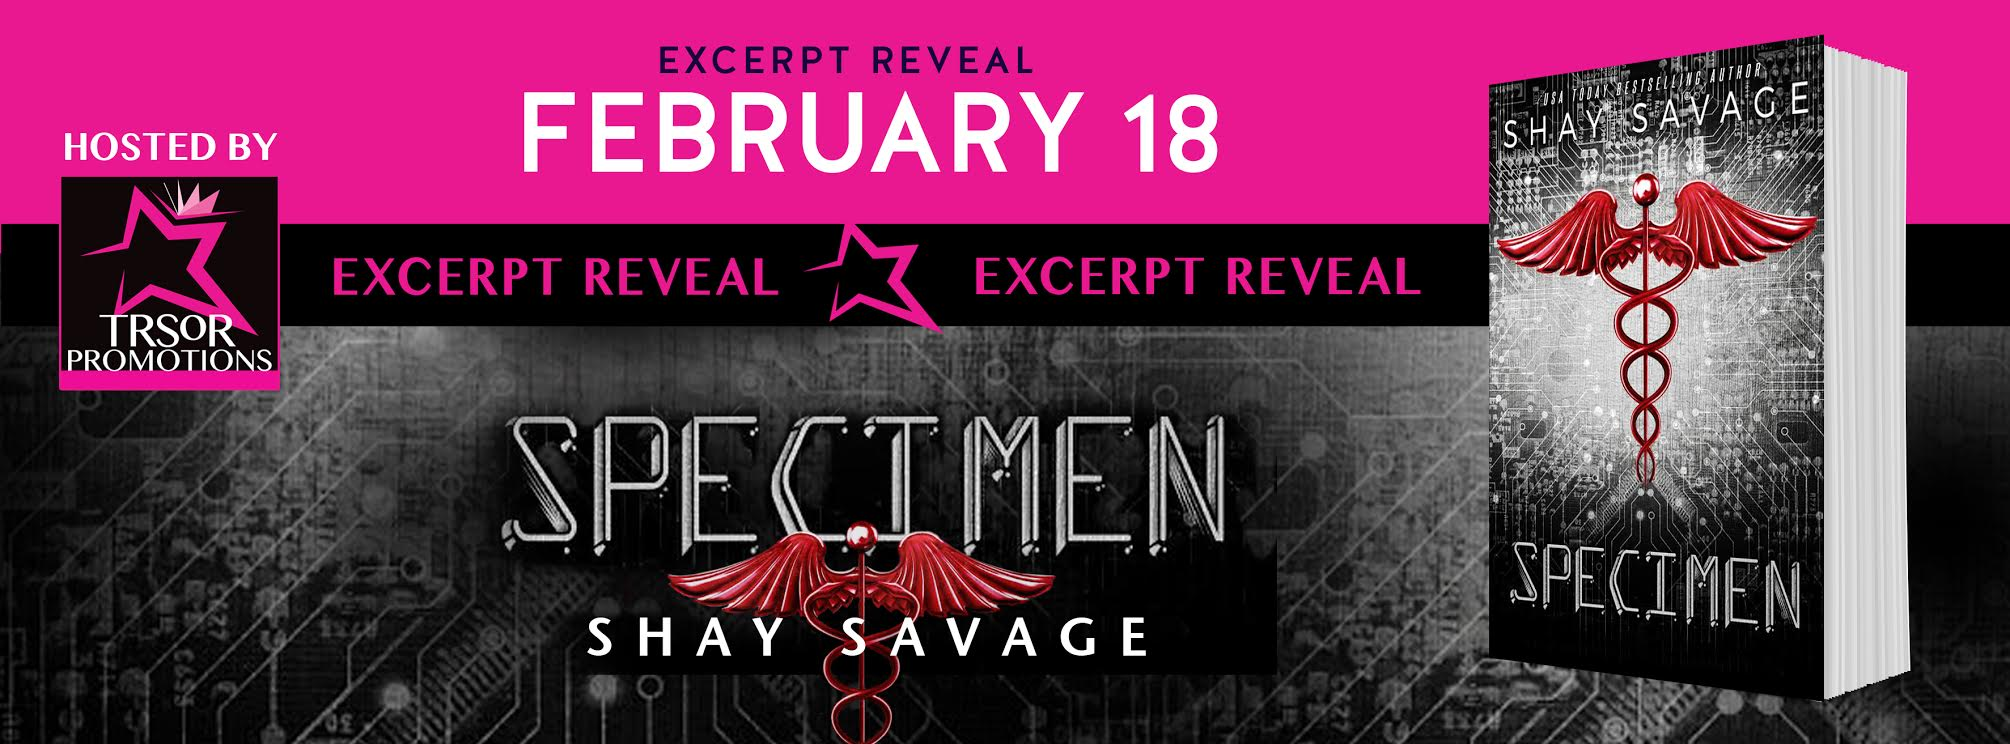 Excerpt Reveal ~ Specimen by Shay Savage